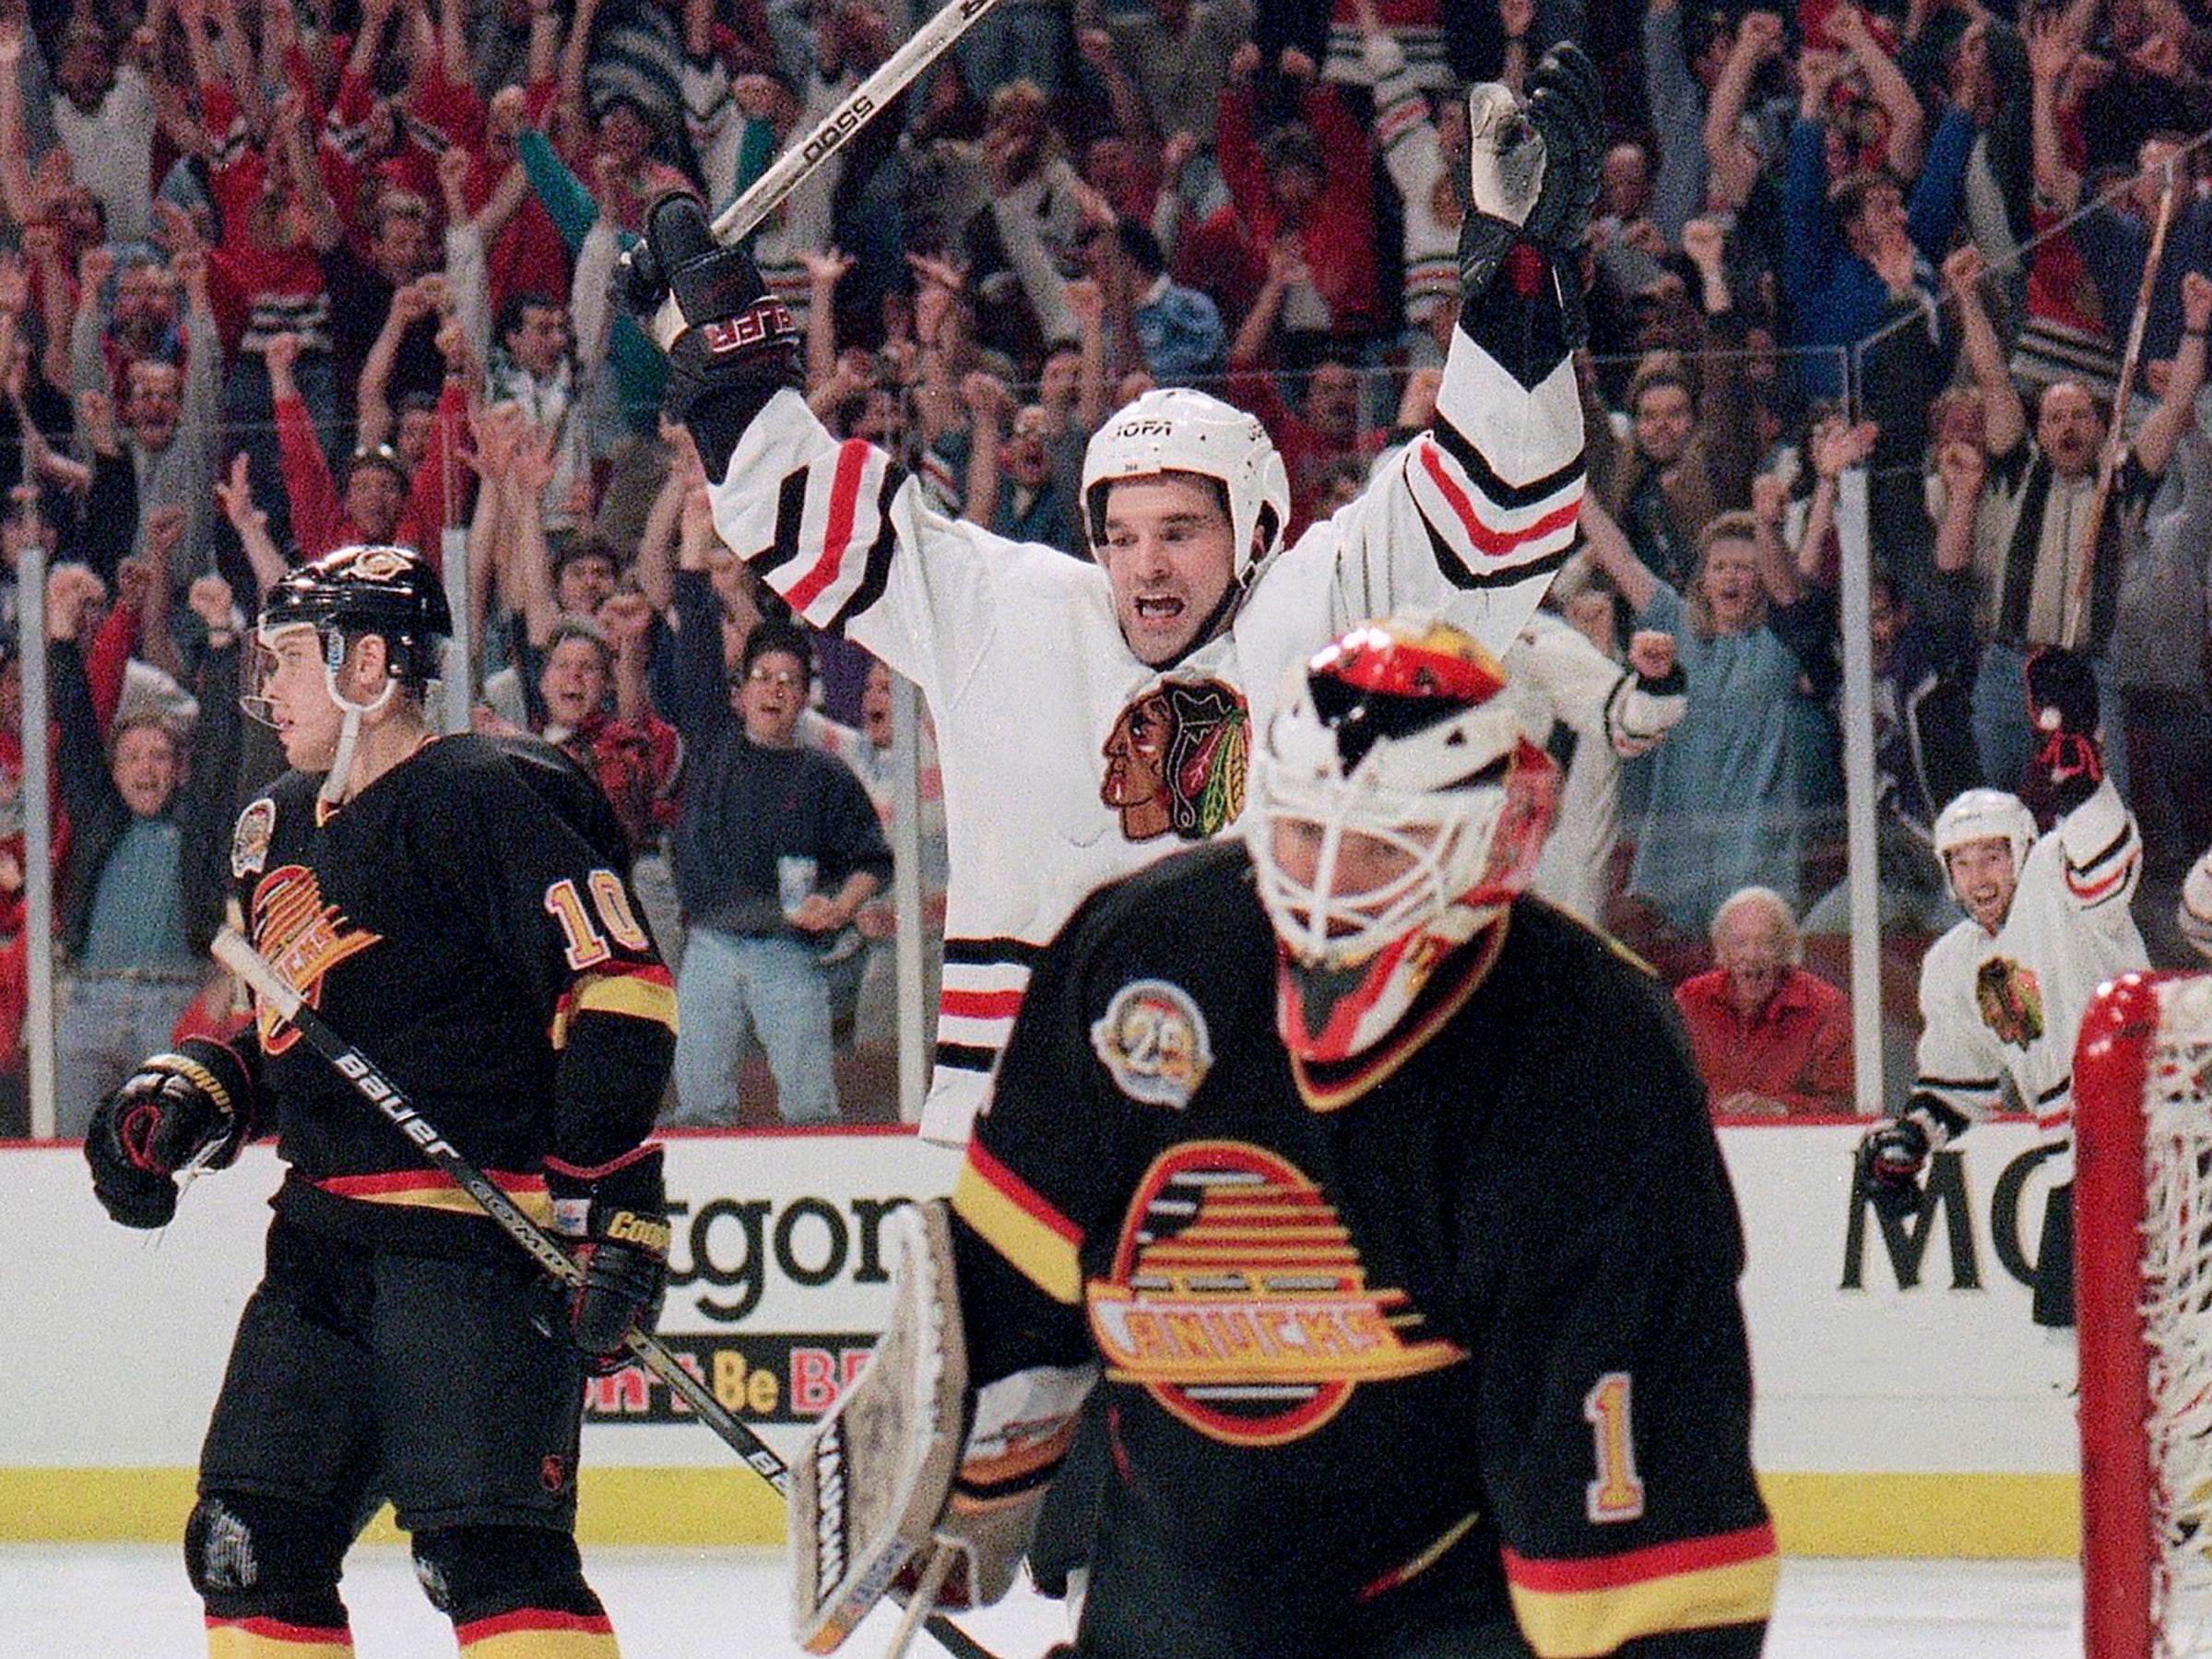 The Chicago Blackhawks' Joe Murphy celebrates over Vancouver Canucks goalie Kirk McLean after his overtime goal in the second-round playoff game, Sunday, May 21, 1995 in Chicago. The Blackhawks won 2-1 to take a 1-0 lead in the best-of-seven series.